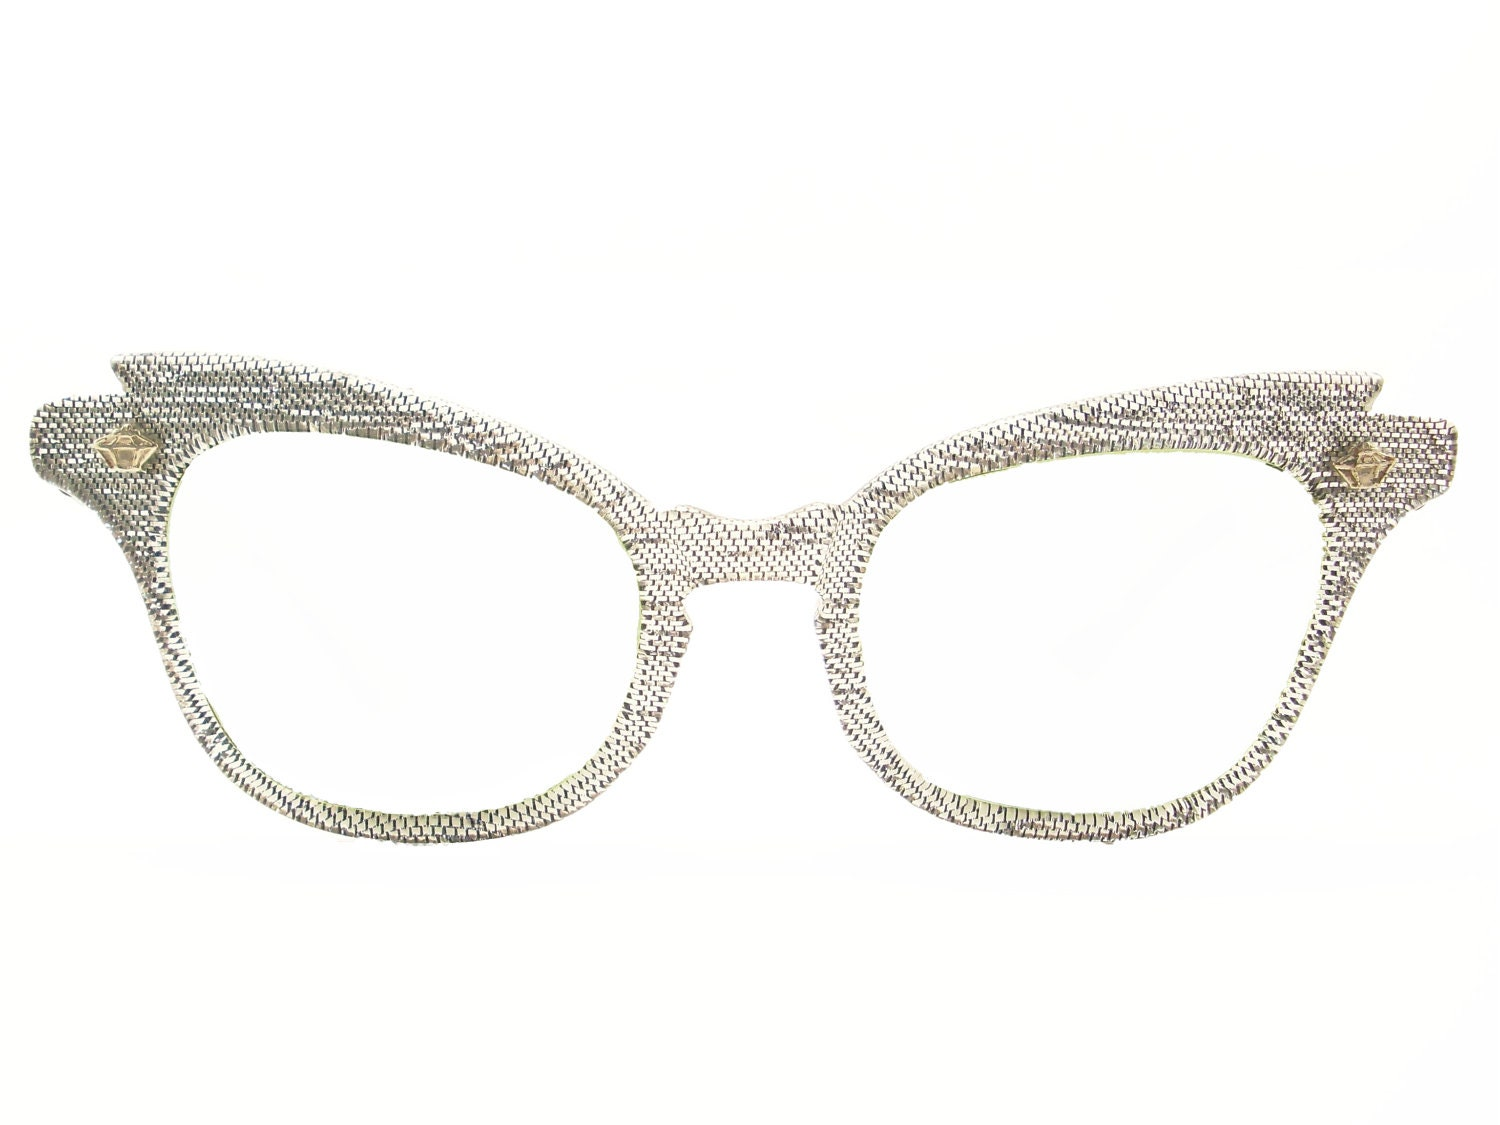 RESERVED Vintage 50s Cat Eye Glasses Frame Eyeglasses Sunglasses New